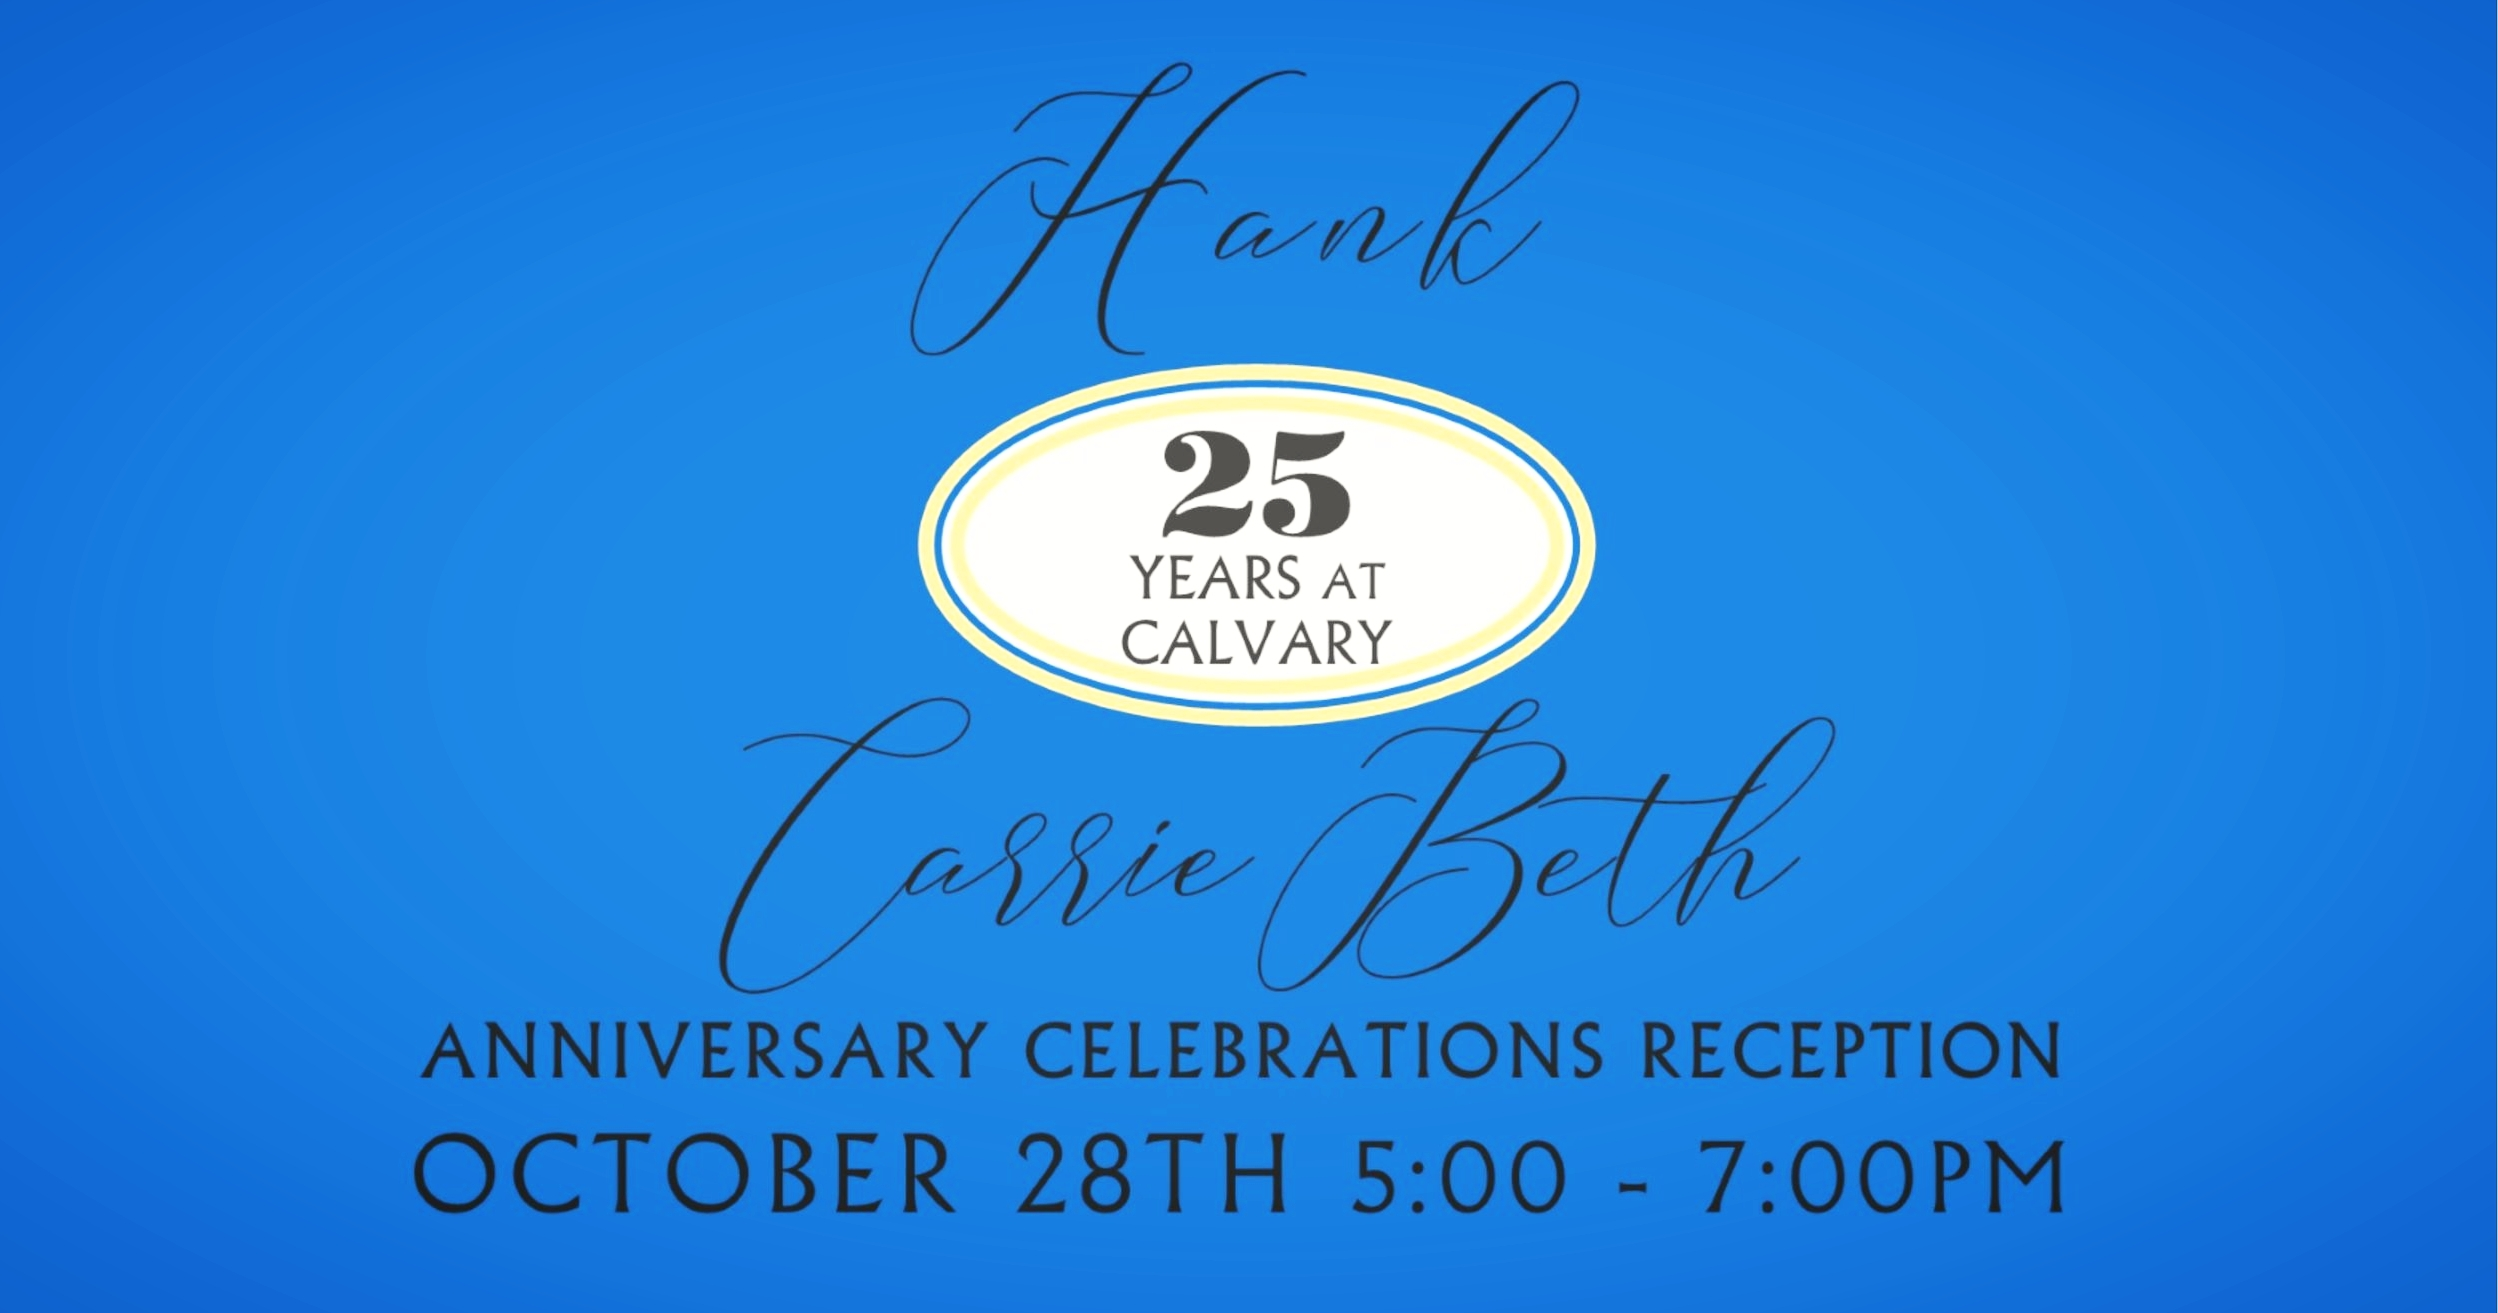 Anniv hank and cb facebook link 101718.jpg